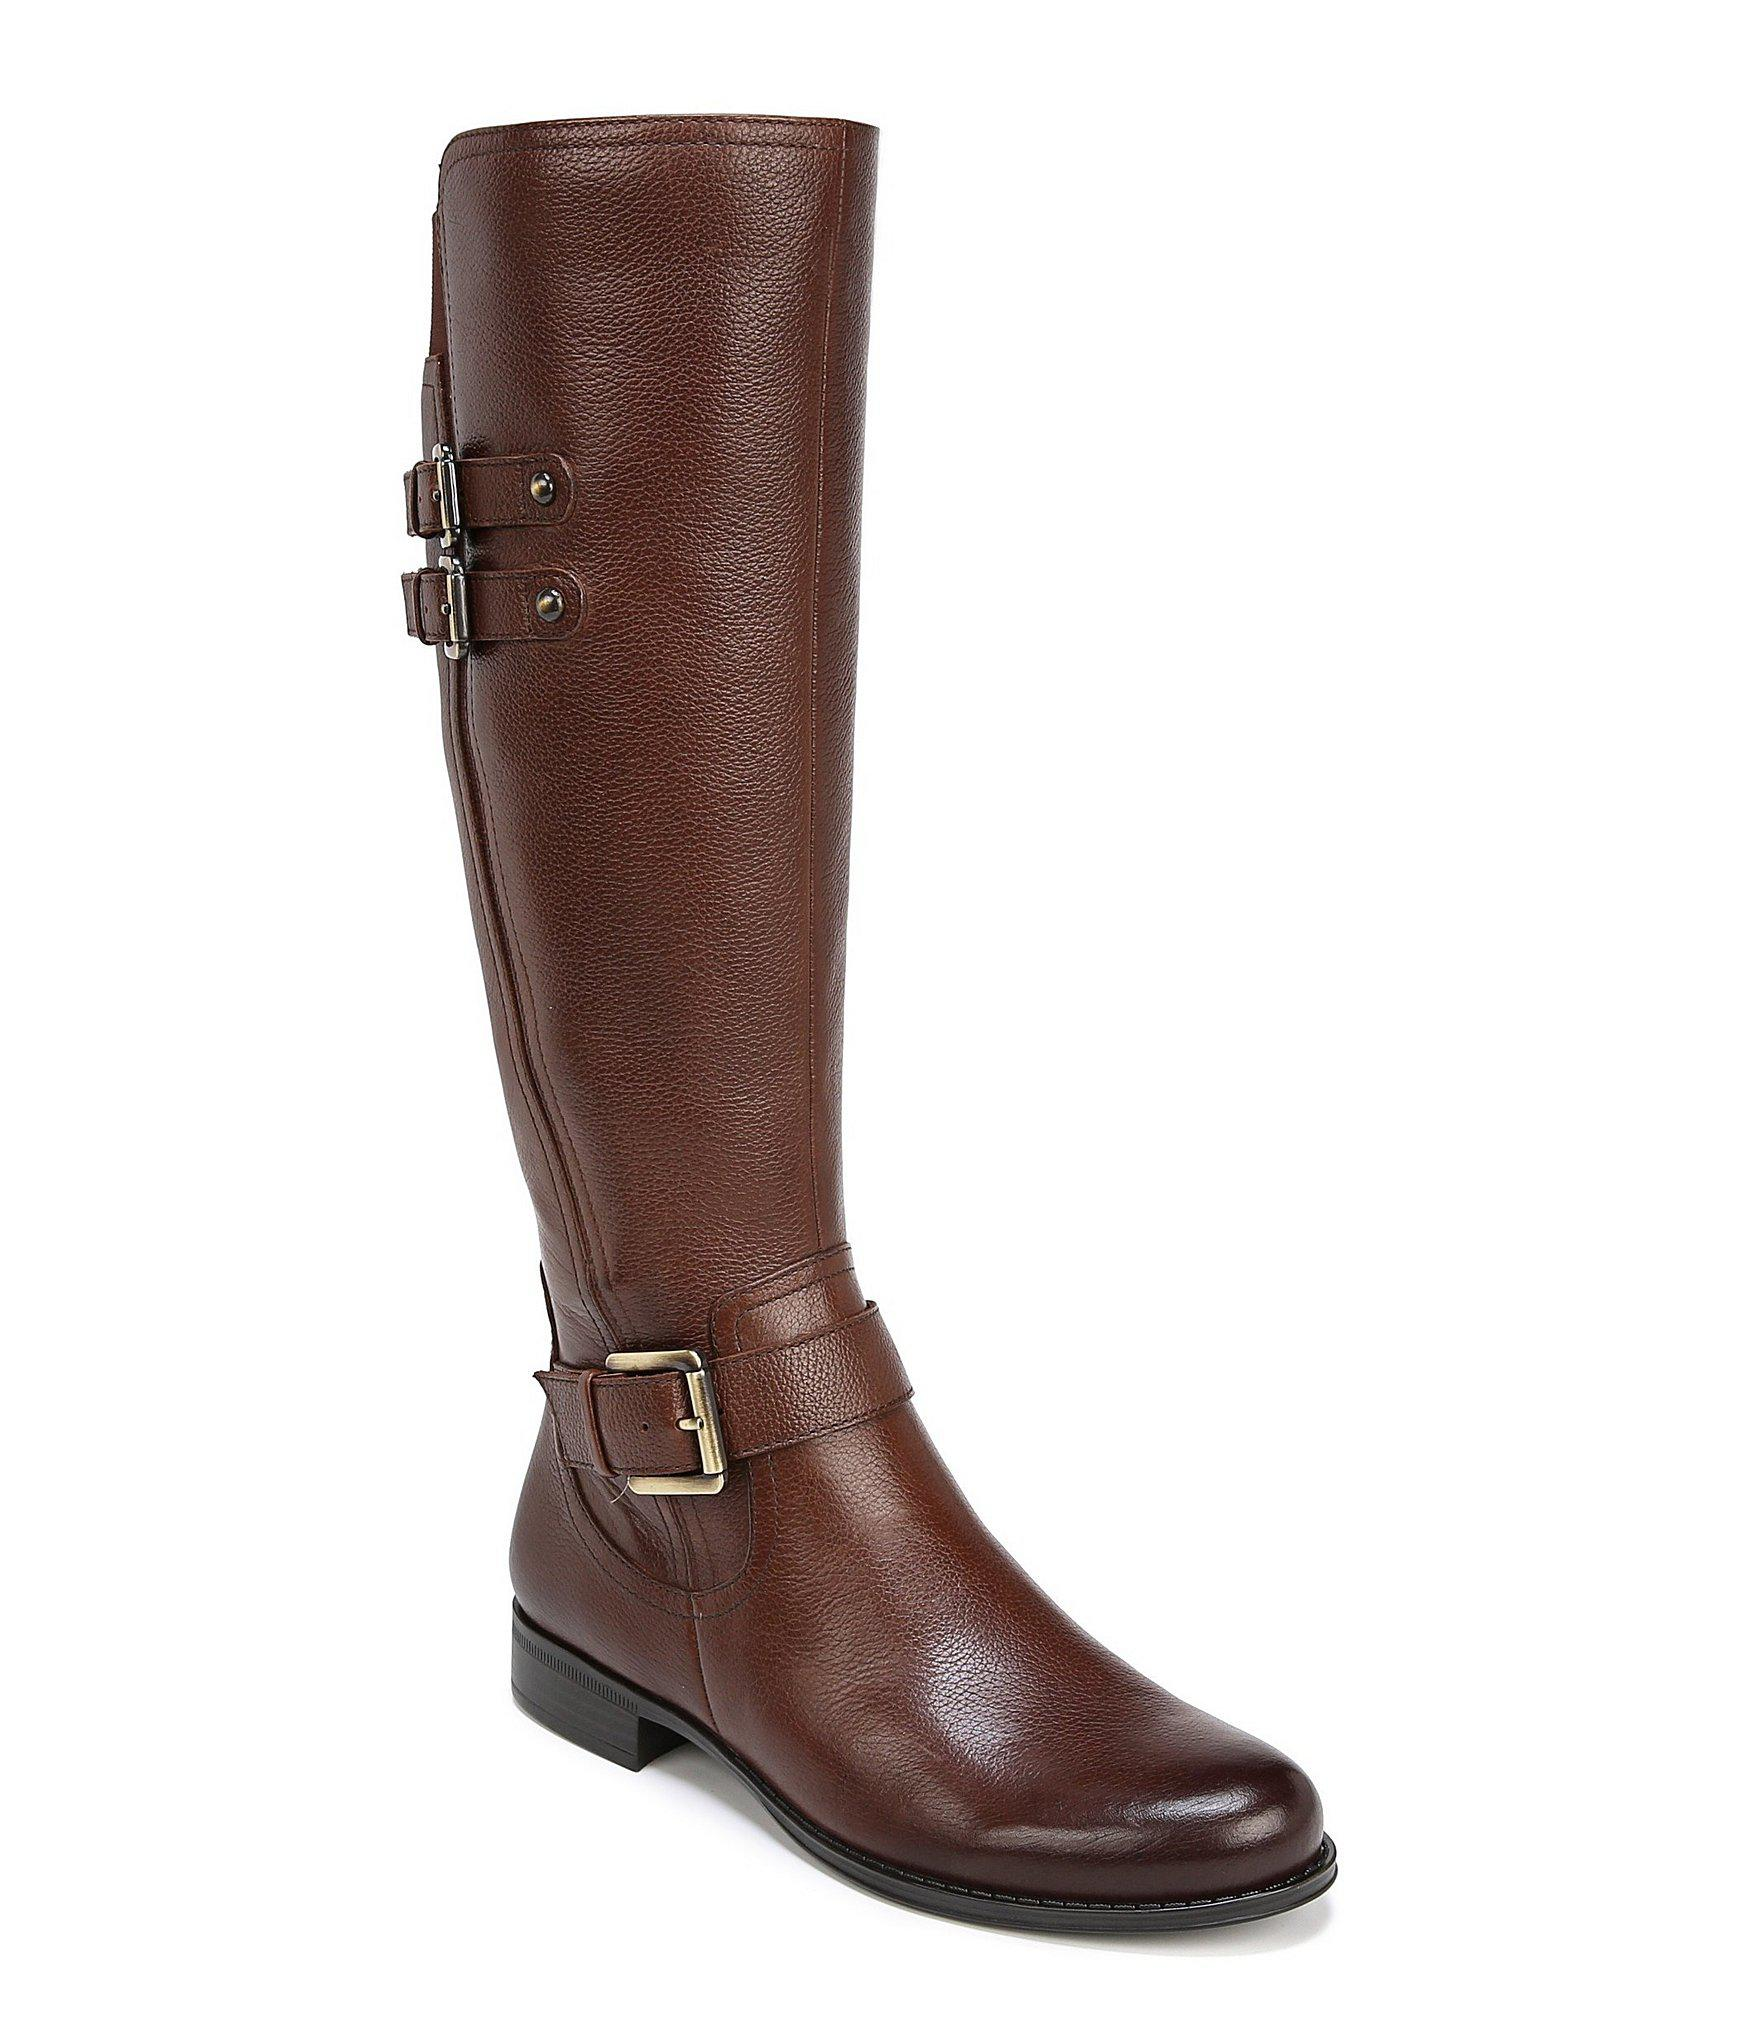 c9d7a681cb1b Lyst - Naturalizer Jessie Wide Calf Buckle Detail Riding Boots in Brown